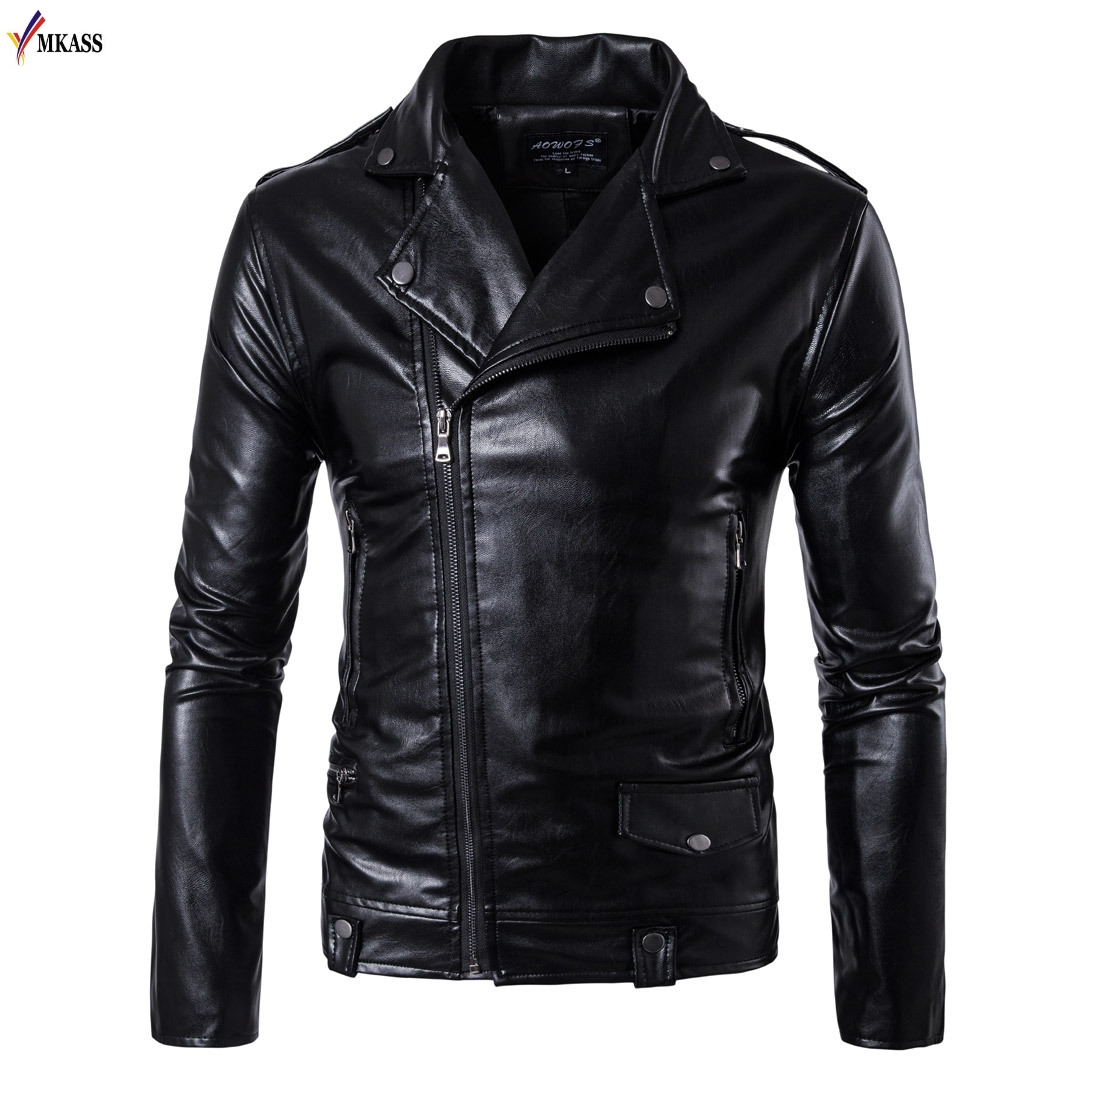 New Men's Leather Jackets Black Motorcycle Leather Jacket For Men Faux Leather Coats Turn Down Collar PU Jackets Overcoats 5XL